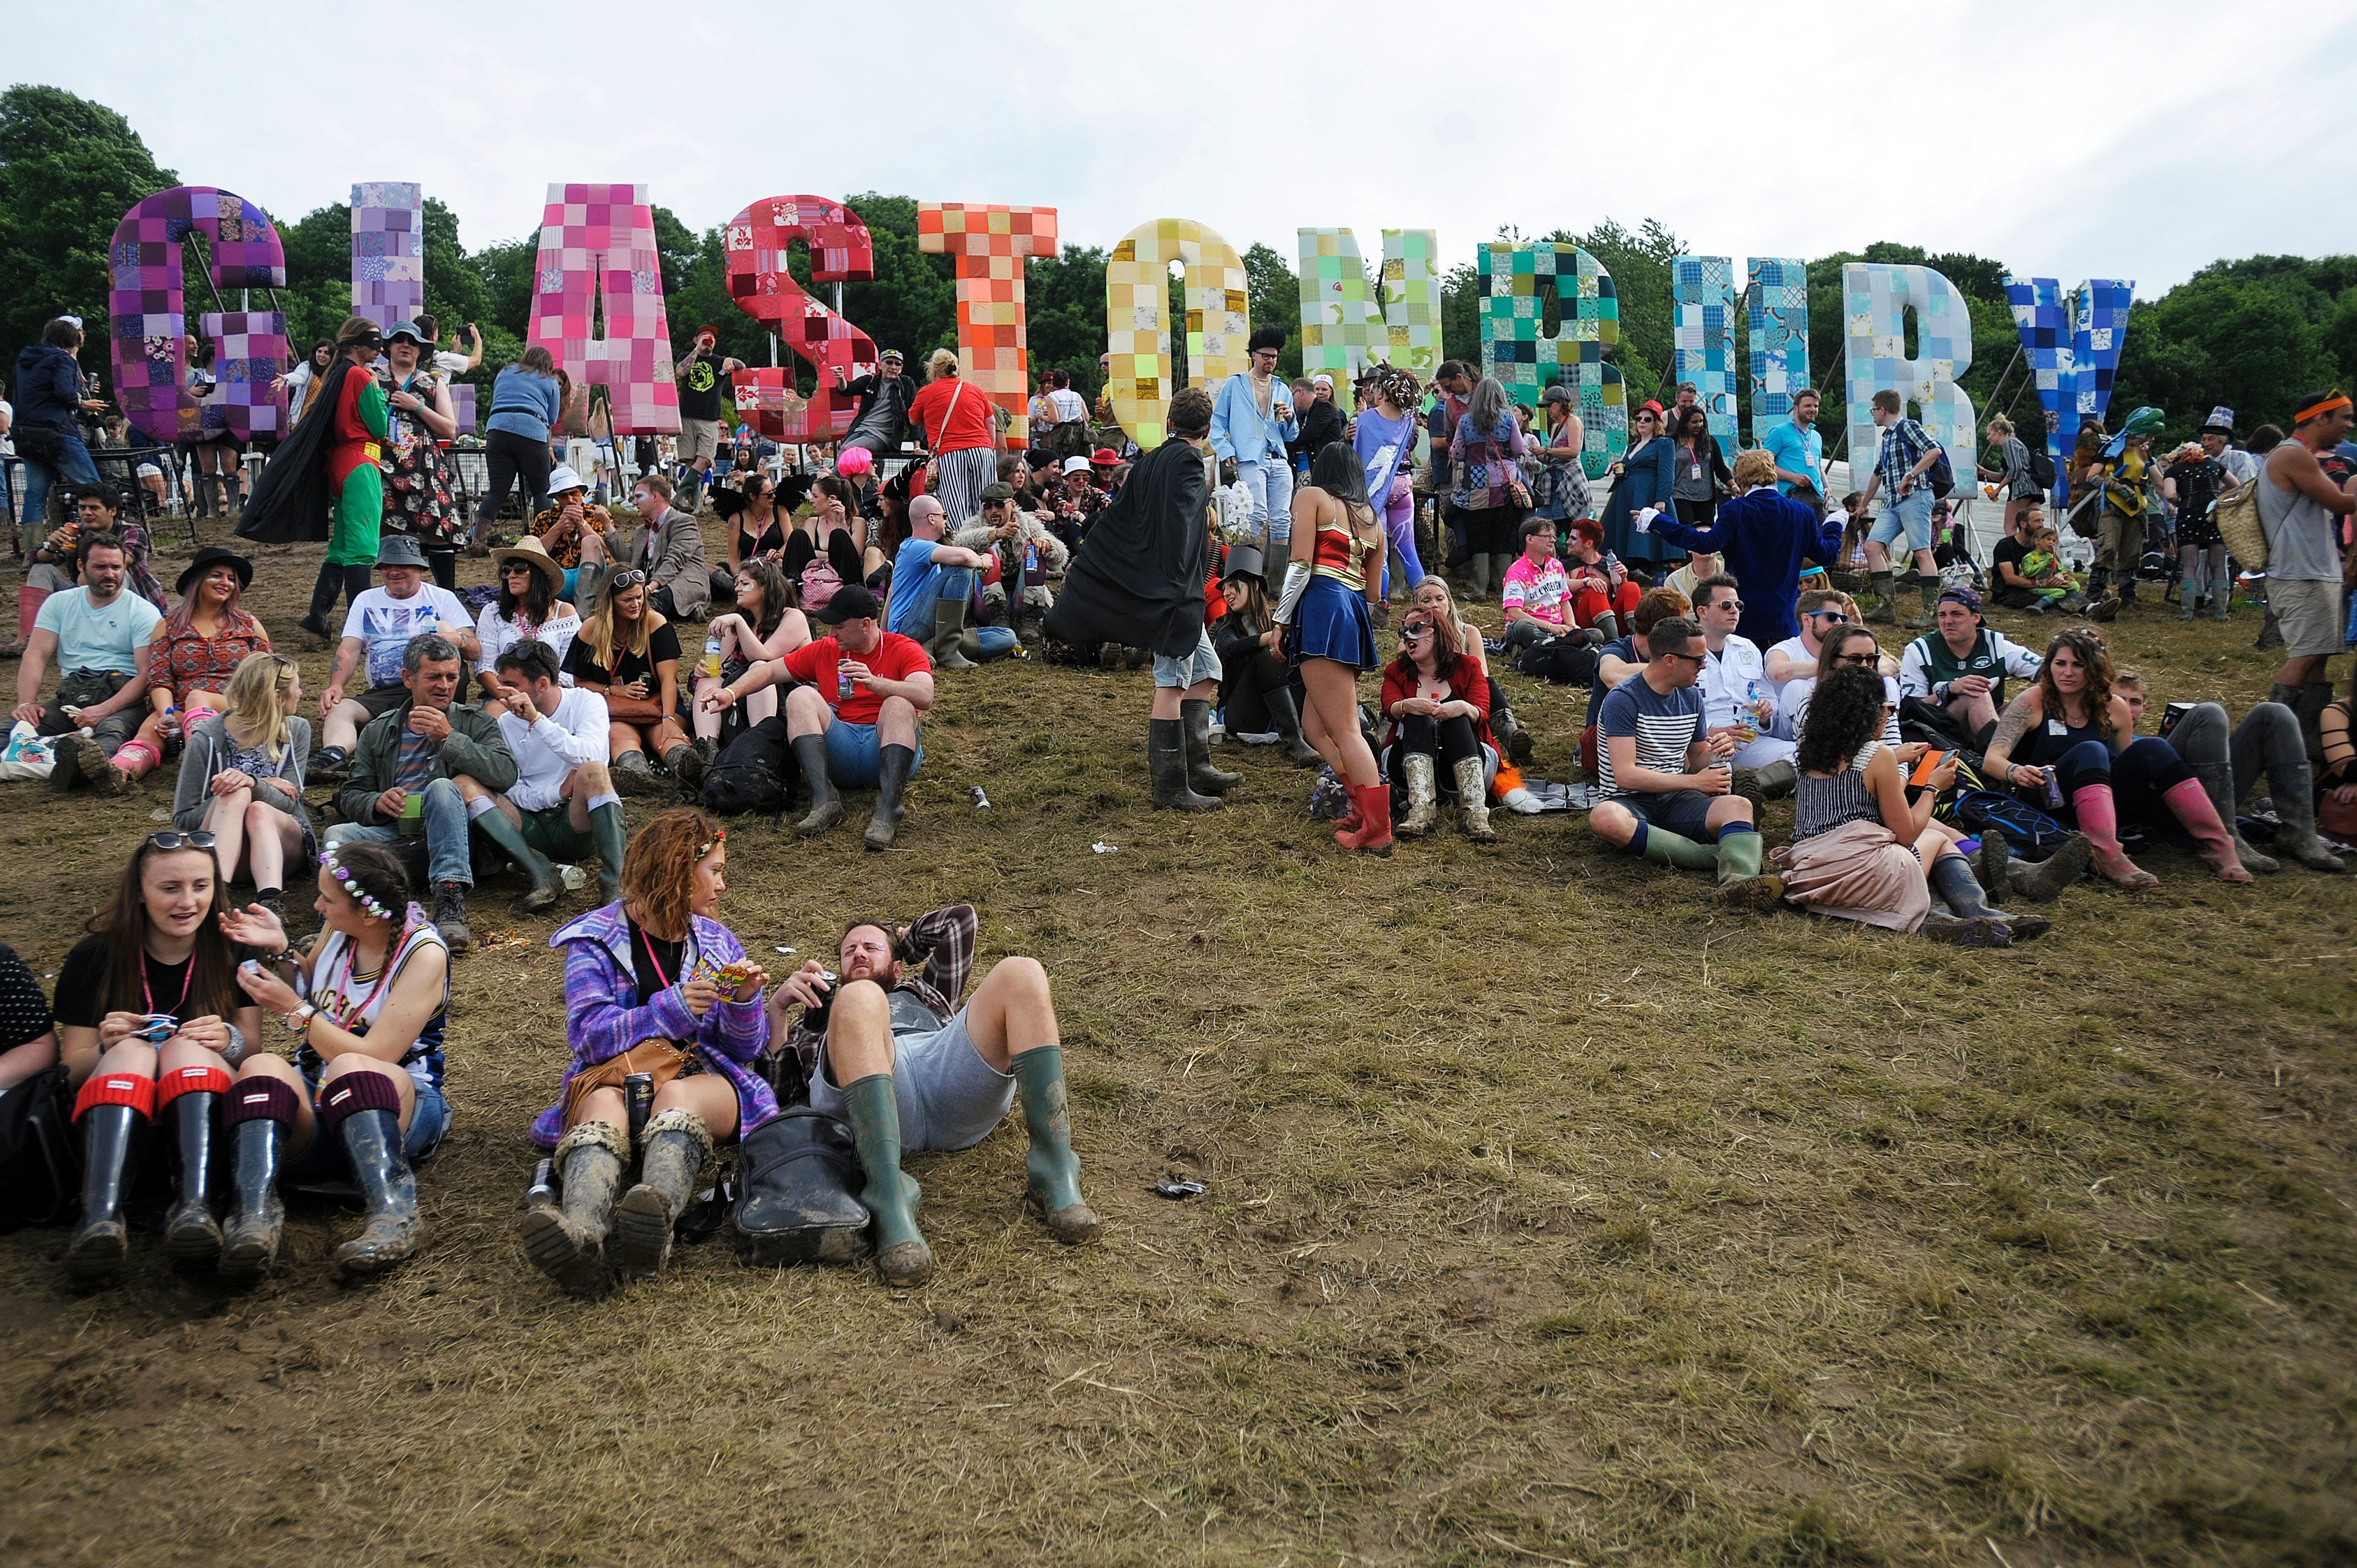 Glastonbury Is The UK's 'Most Promiscuous' Music